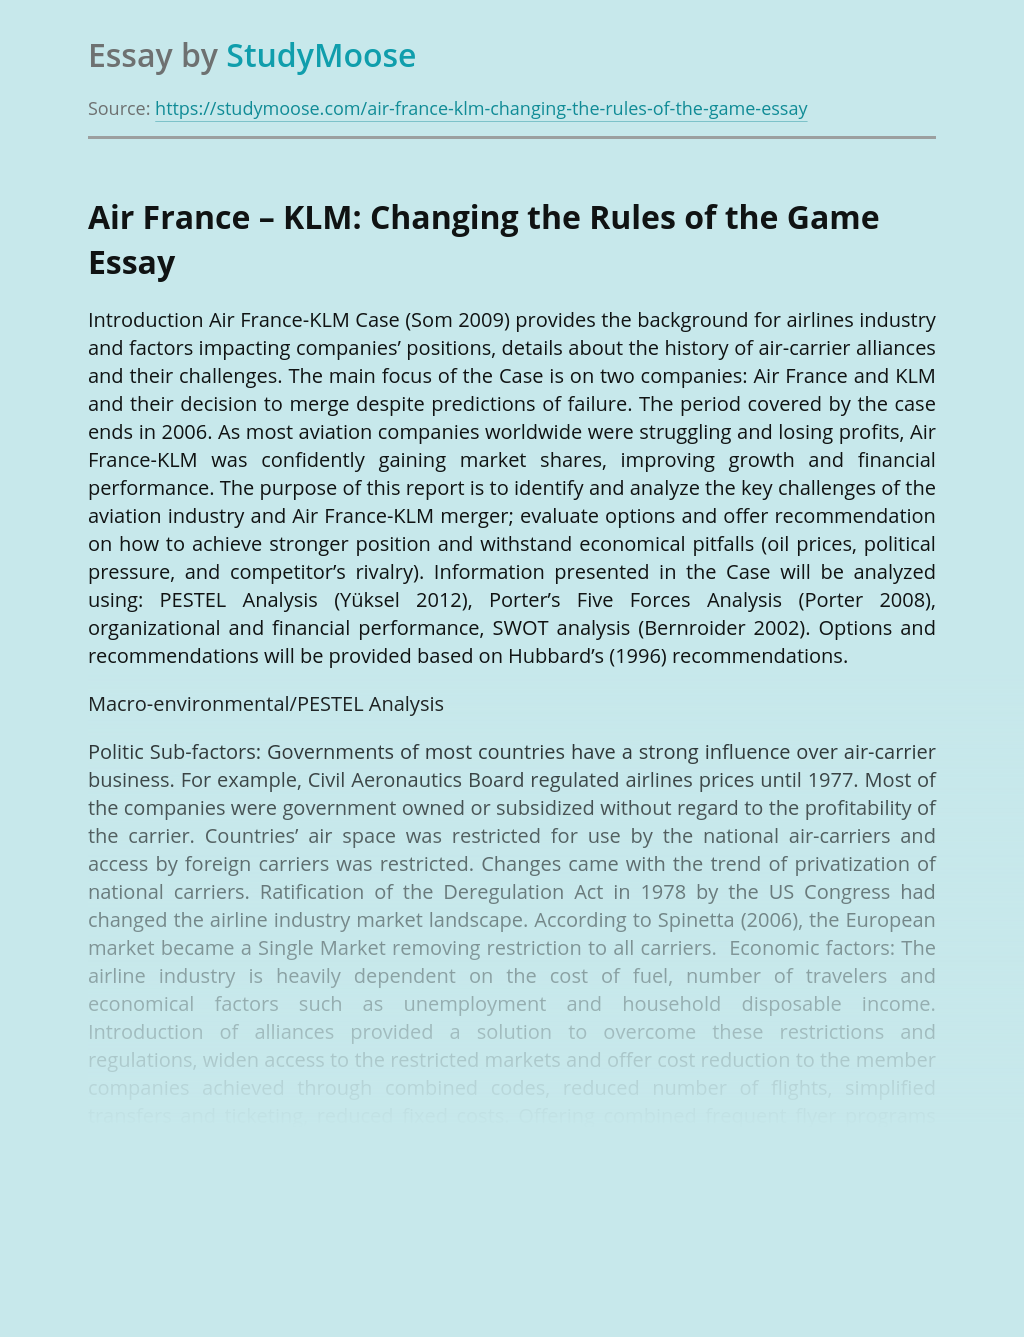 Air France – KLM: Changing the Rules of the Game